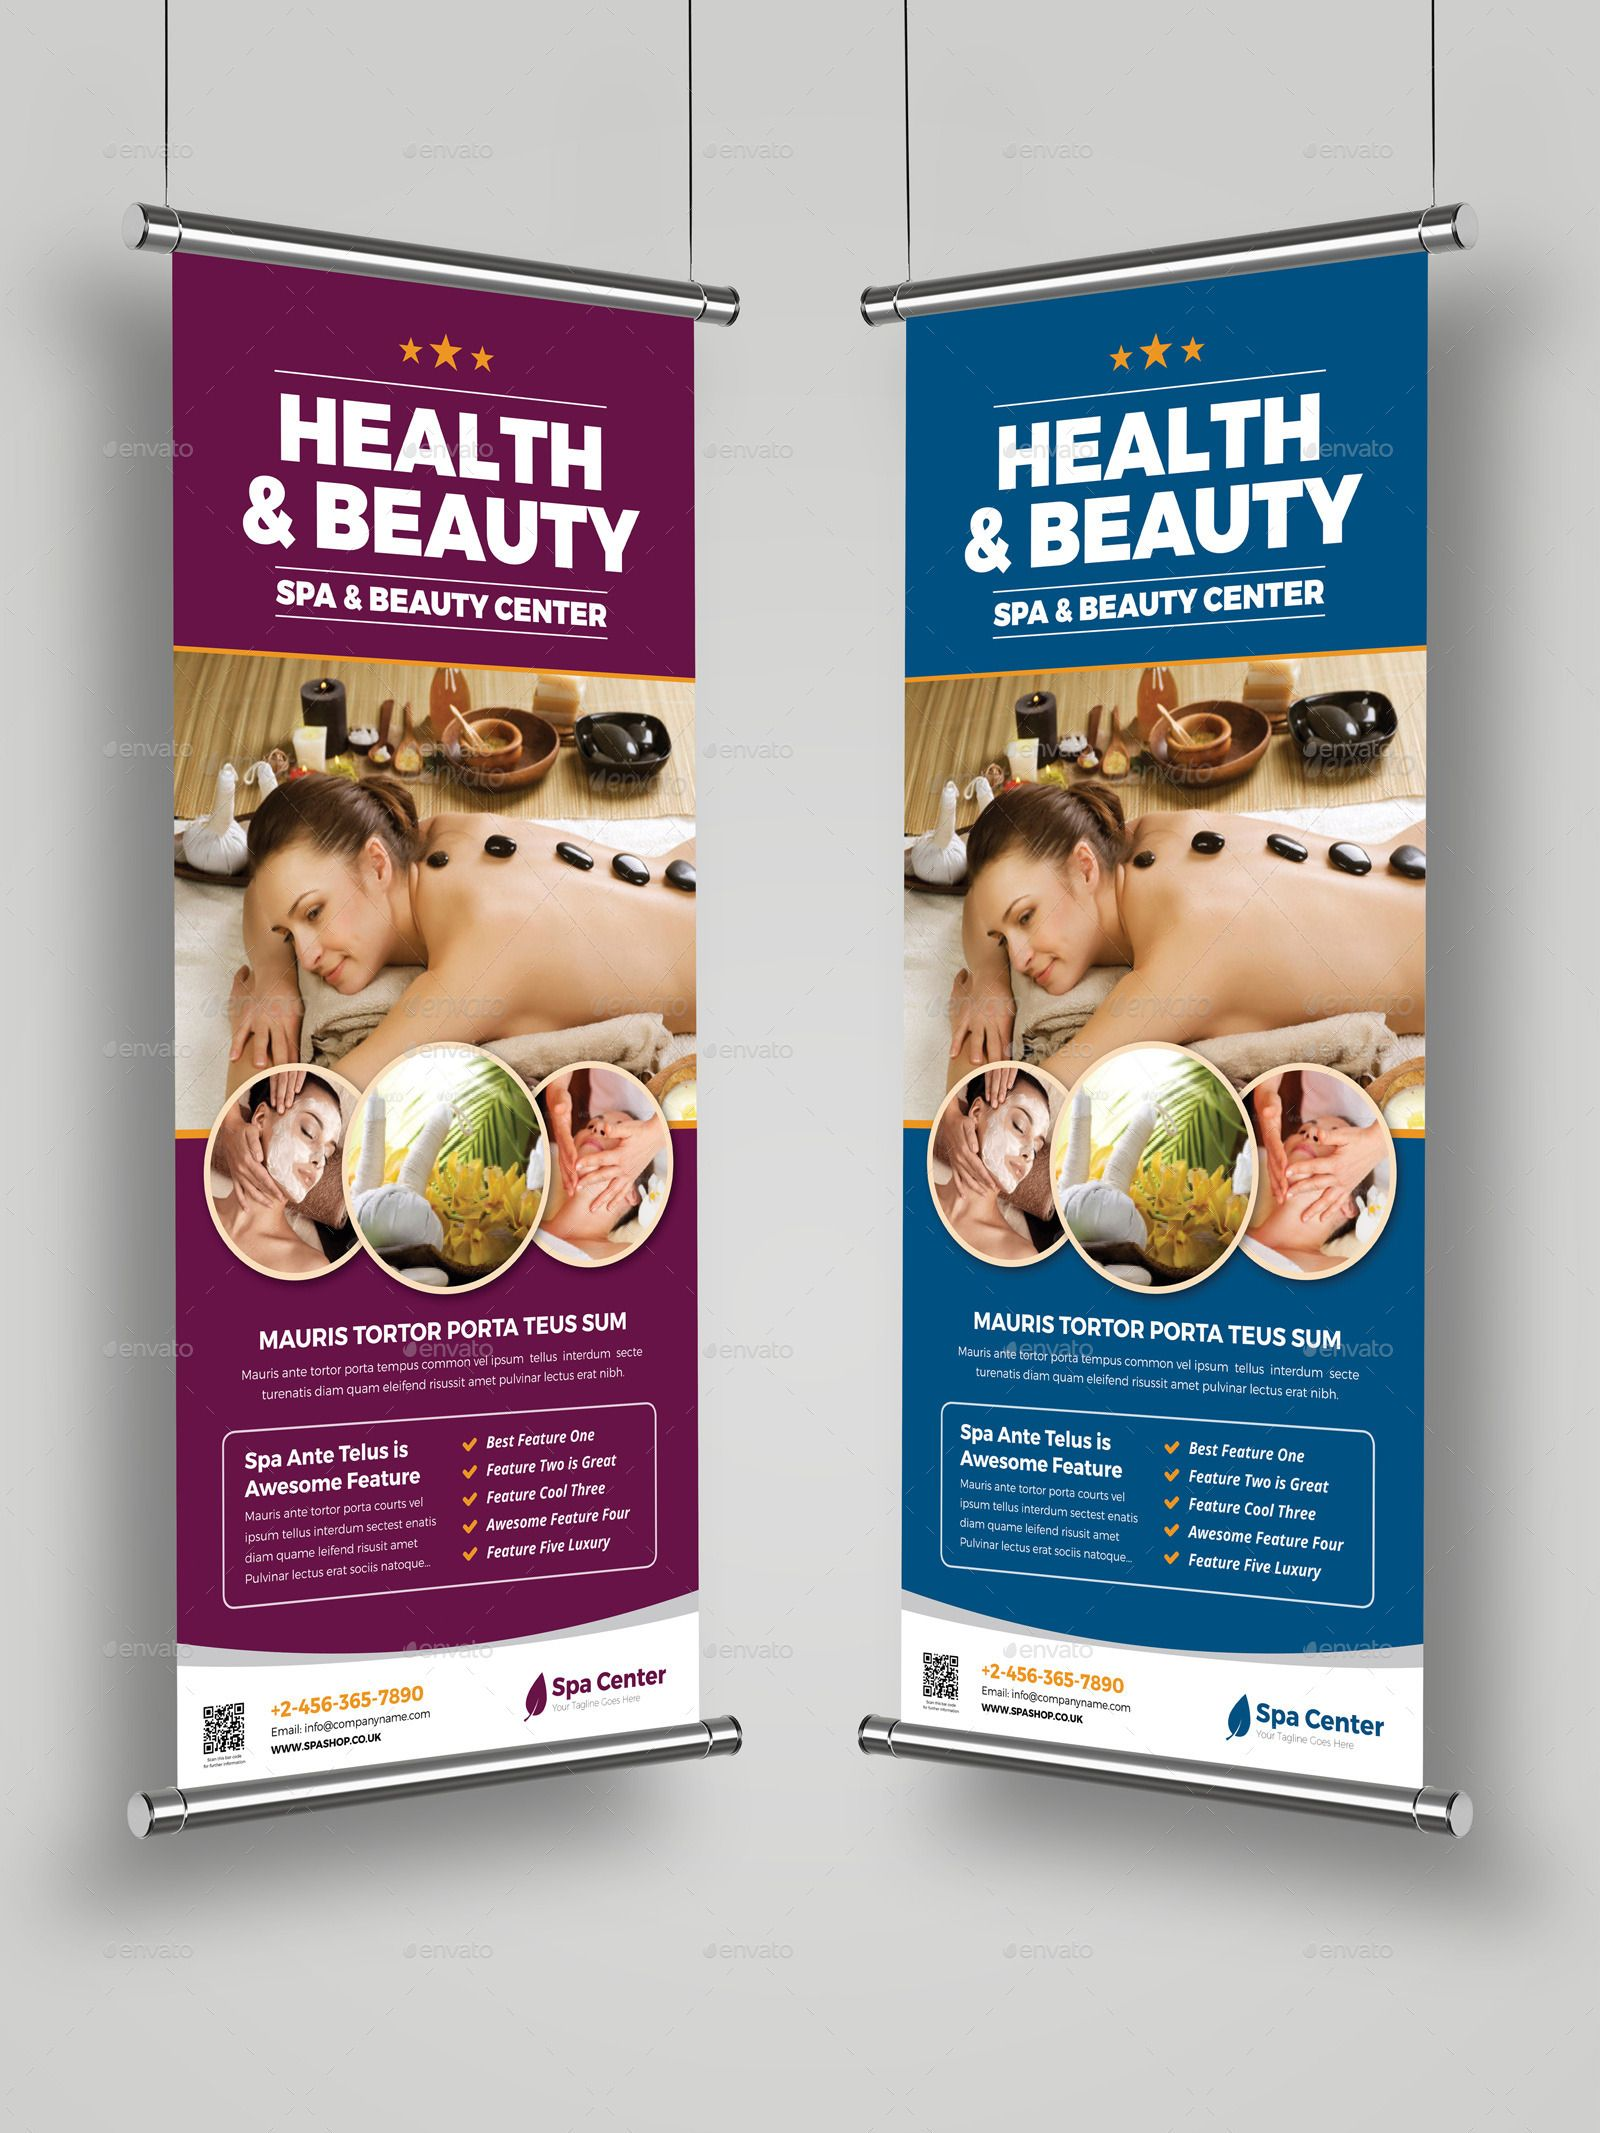 Spa Beauty Roll Up Banner Signage Indesign Affiliate Roll Ad Beauty Spa Indesign Folletos Disenos De Unas Terapia De Masaje